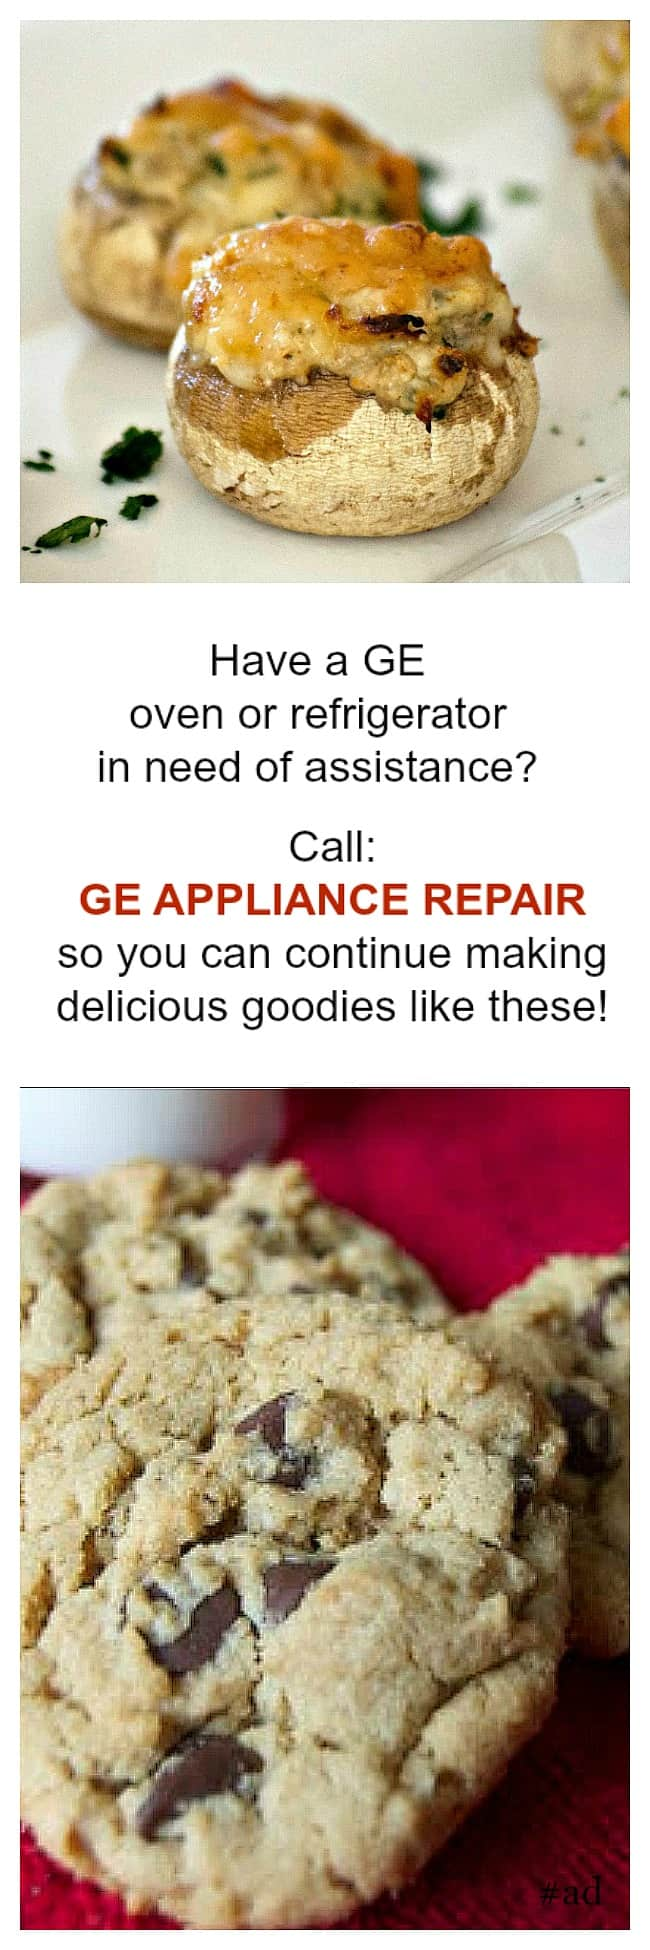 Have your General Electric Appliance repaired quickly and accurately by factory-trained technician in your area by GE Appliance Repair. #ad